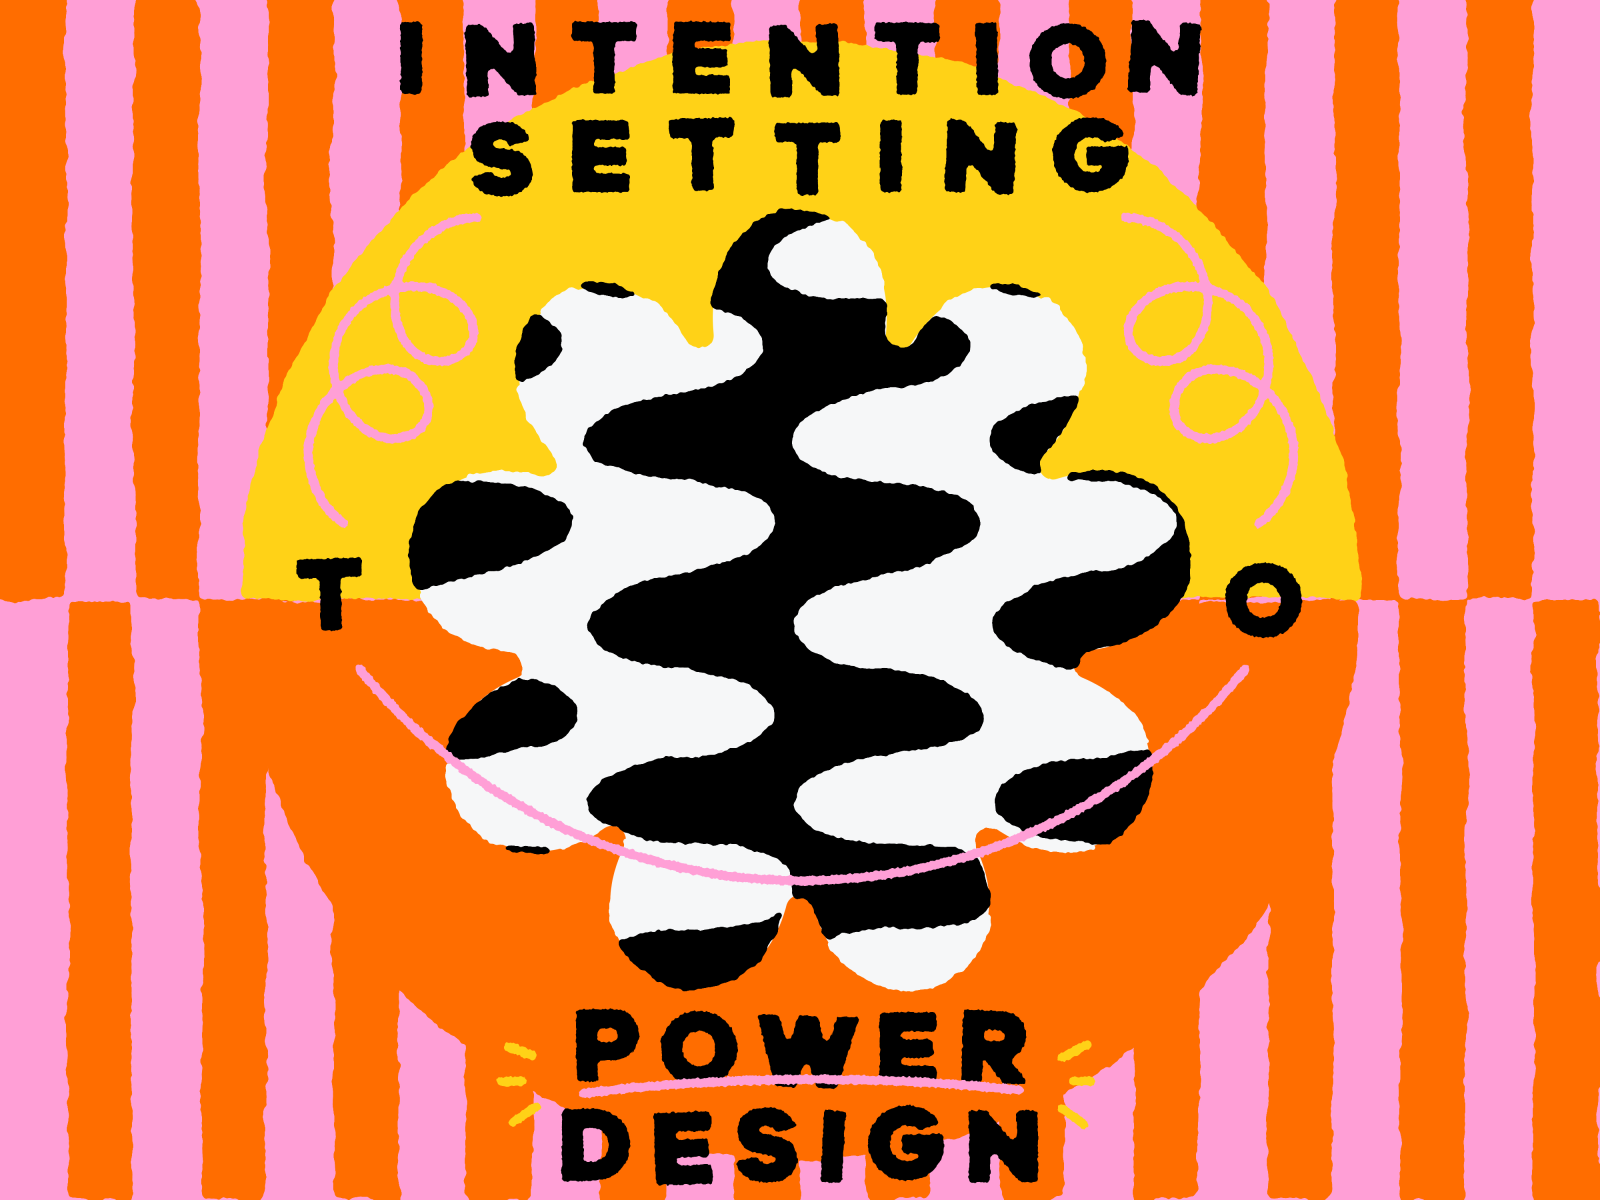 Overtime: Intention Setting To Power Design